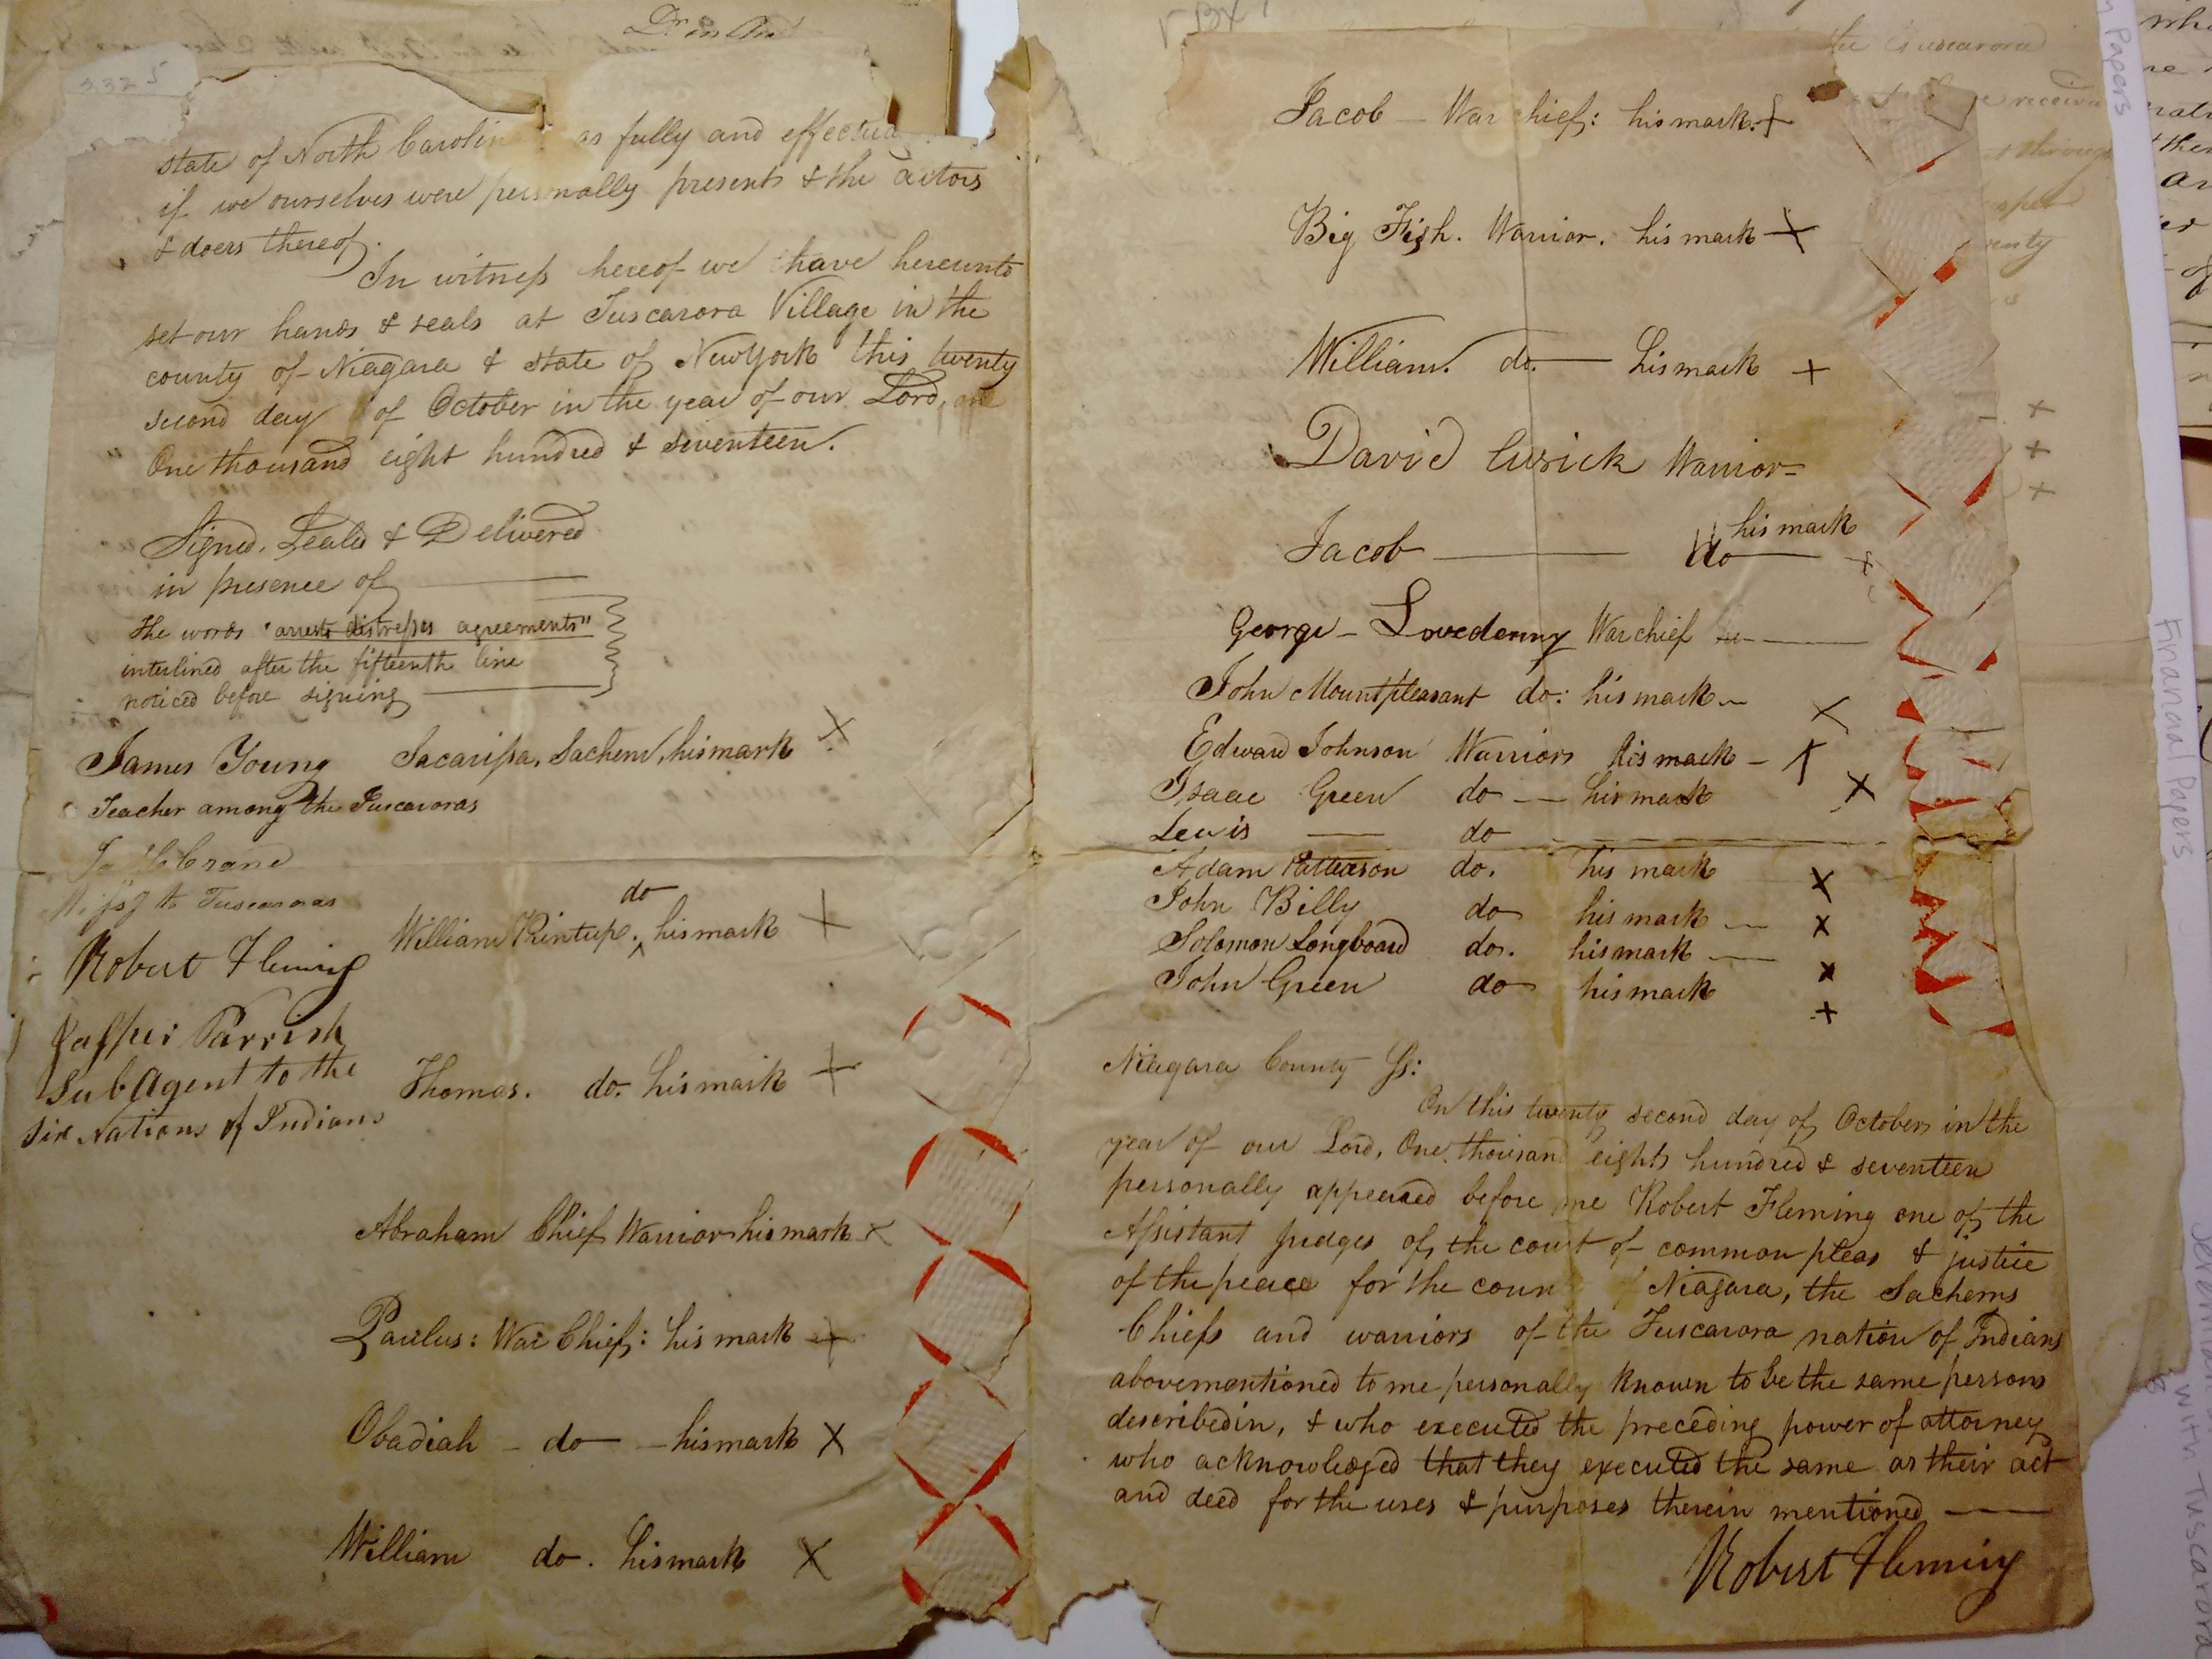 A power of attorney sent to Jeremiah Slade in 1817, signed by Tuscarora chiefs and warriors